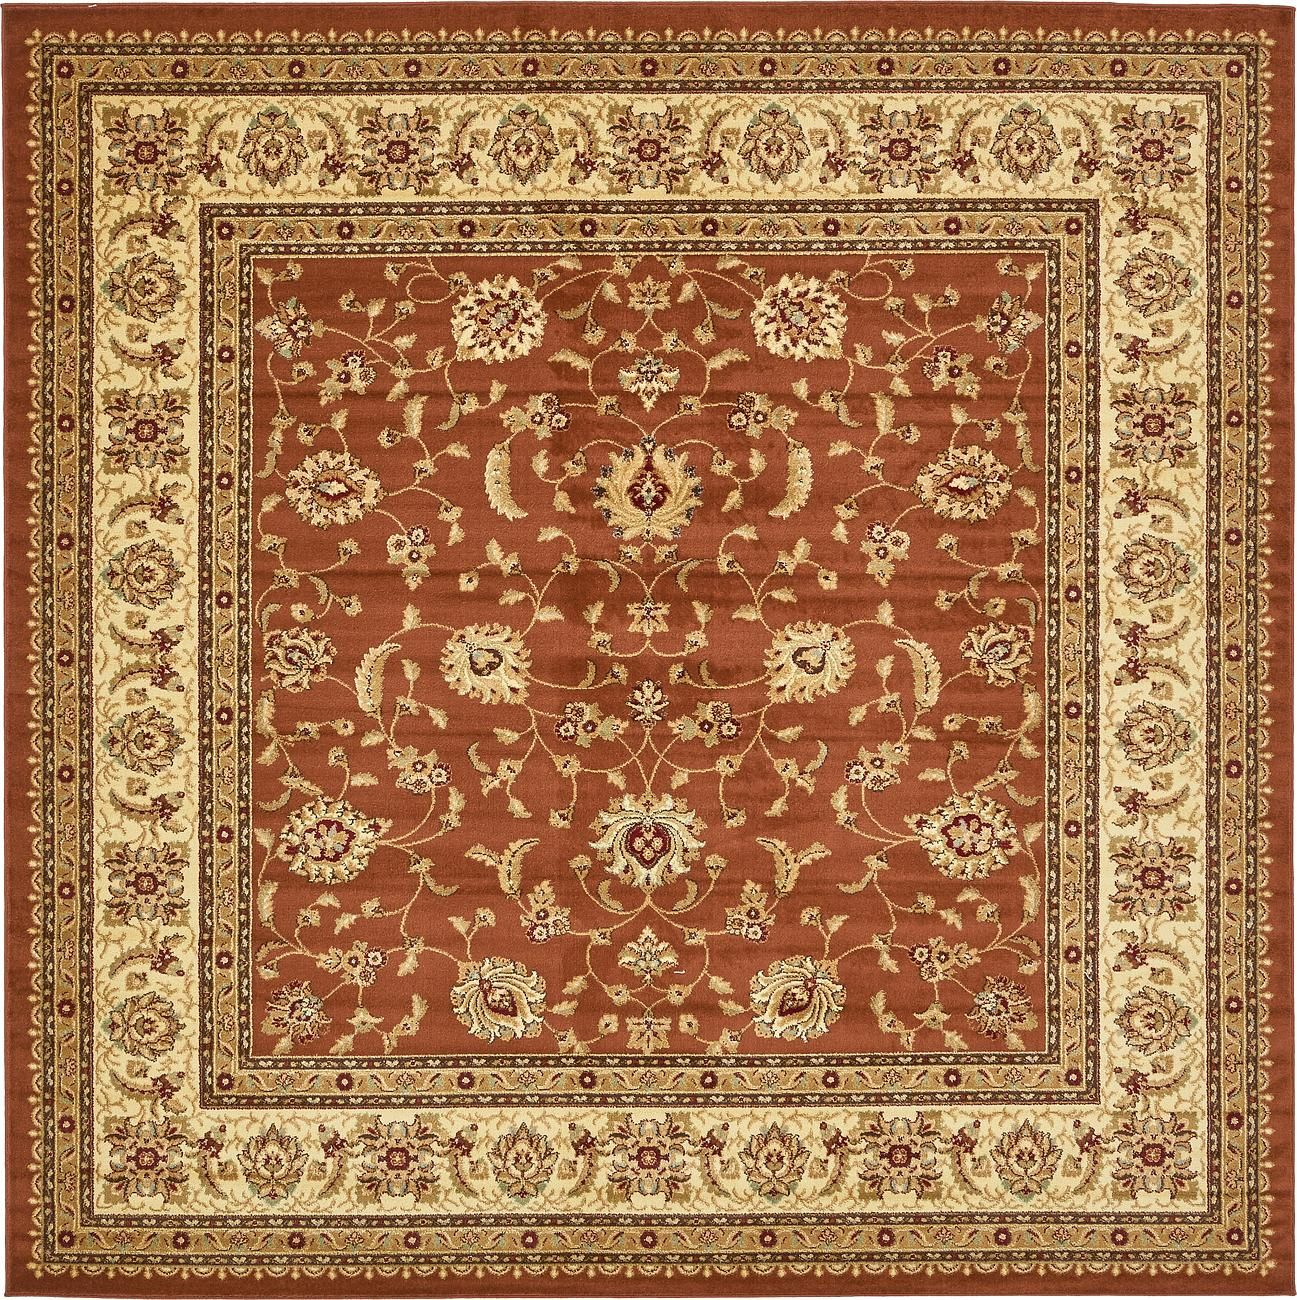 Brick Red 10 X 10 Classic Agra Square Rug Area Rugs Esalerugs Square Area Rugs Floral Area Rugs Area Rugs